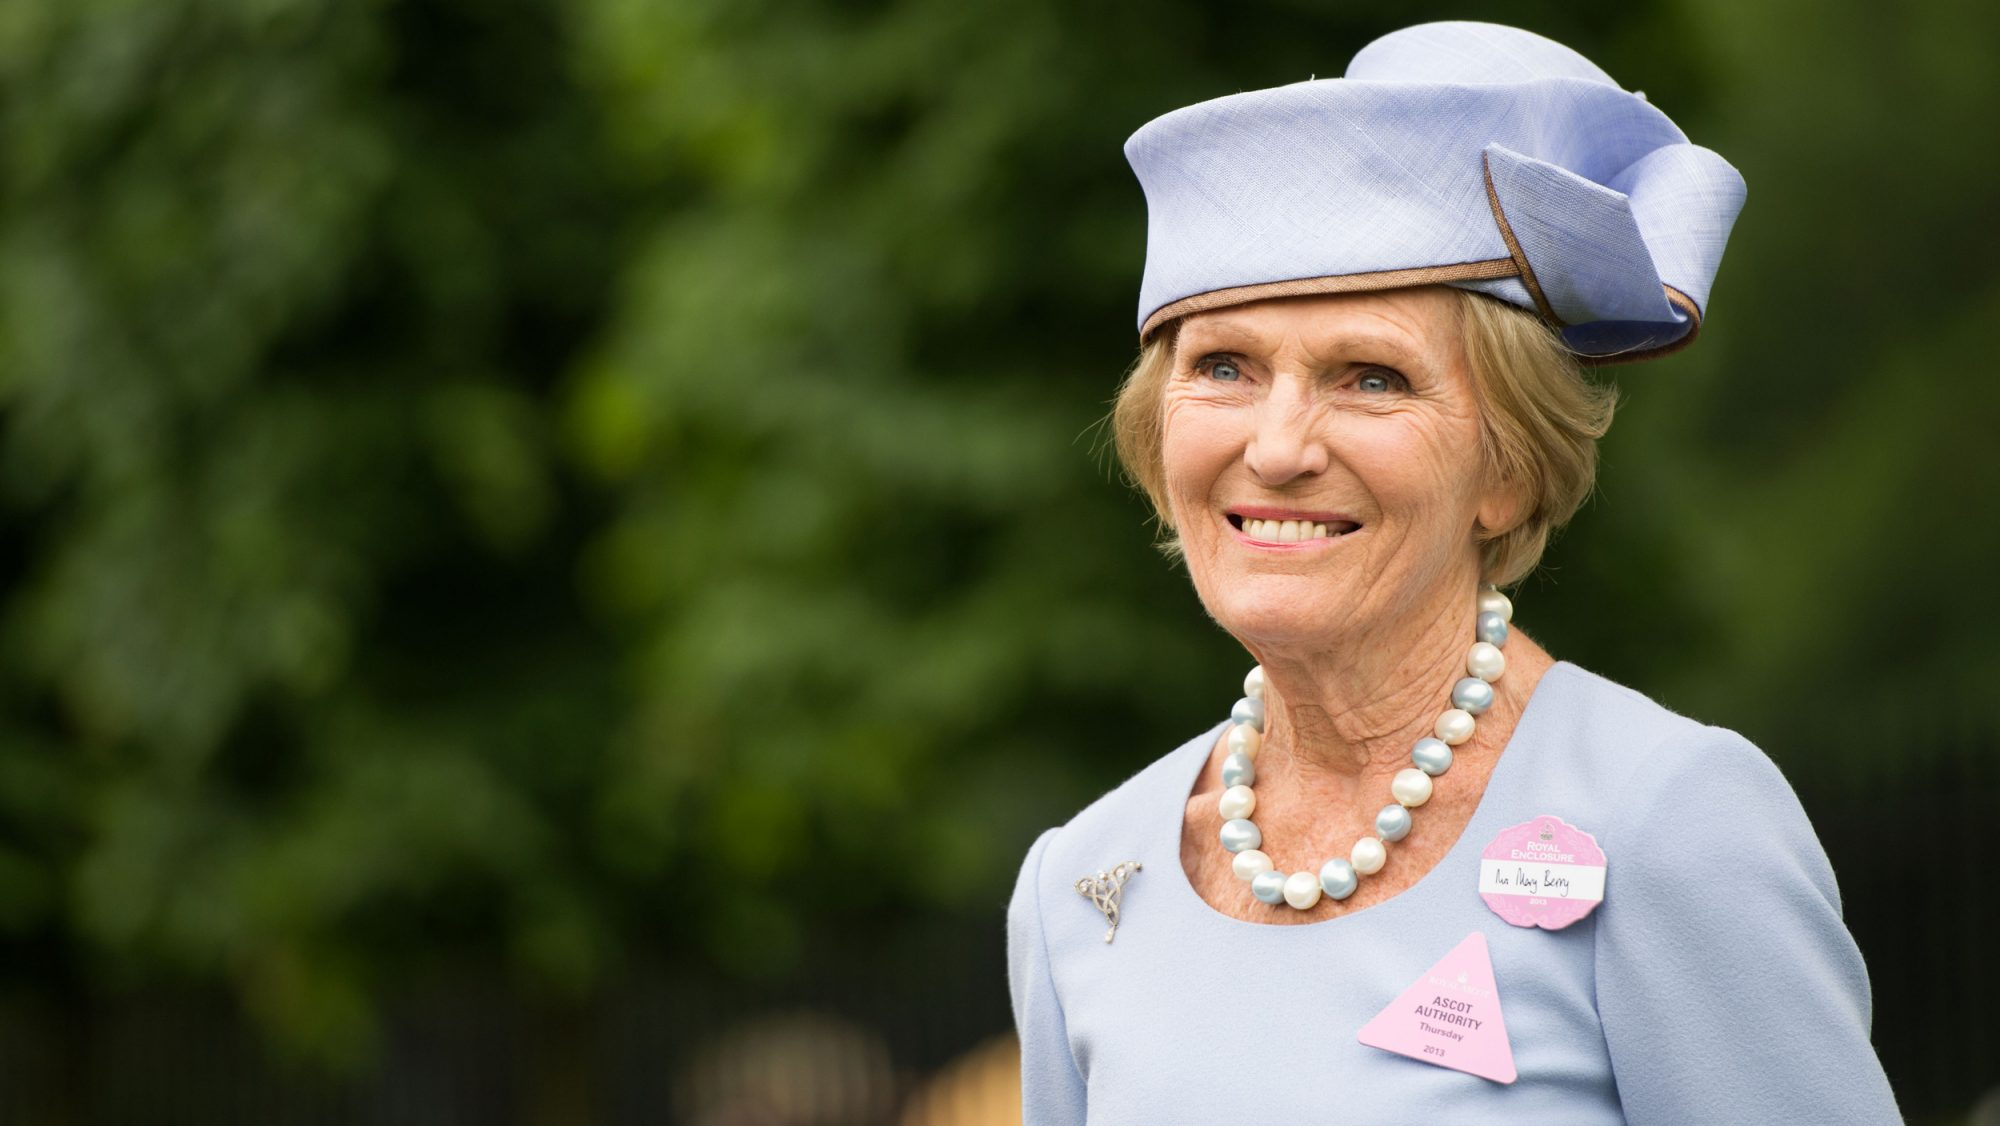 'Great British Bake Off' Contestant Cracks Joke About Mary Berry